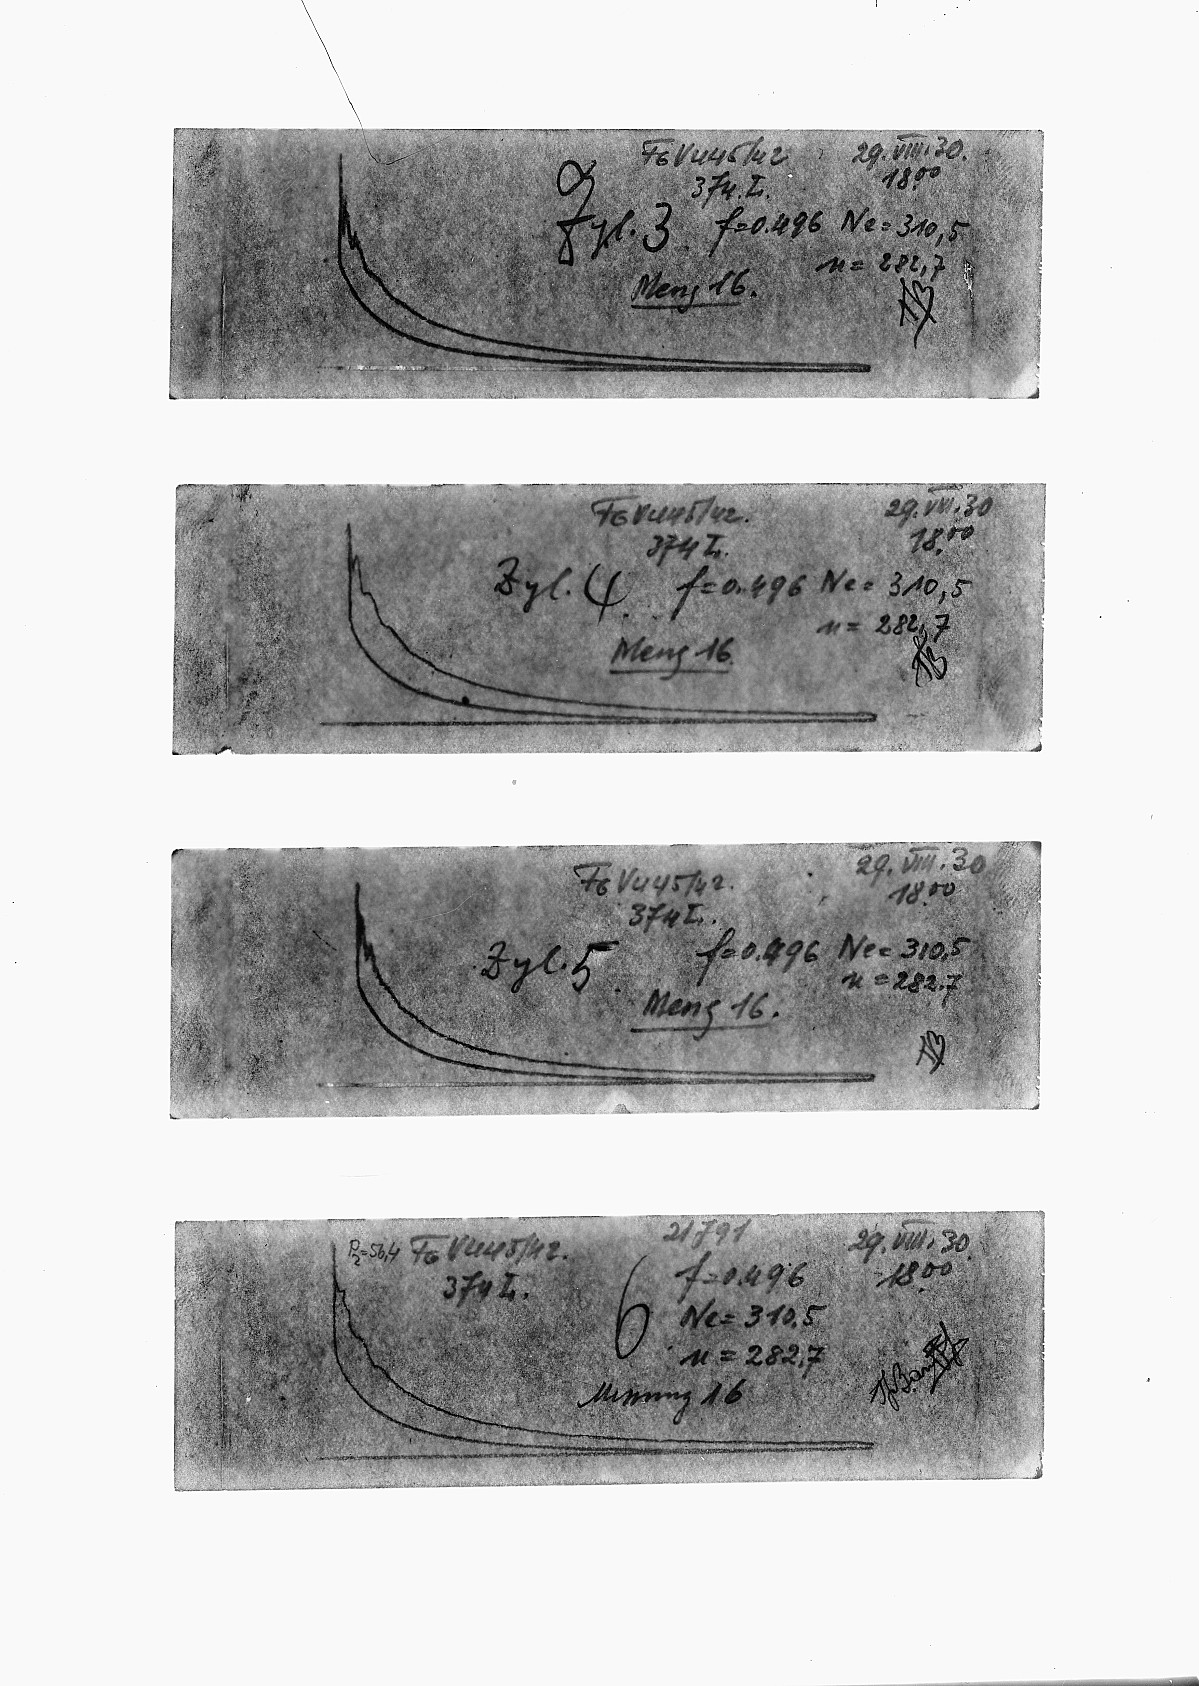 GFA 16/15176: Diagrams in the acceptance reports of GOMZY-LENINGRAD engine